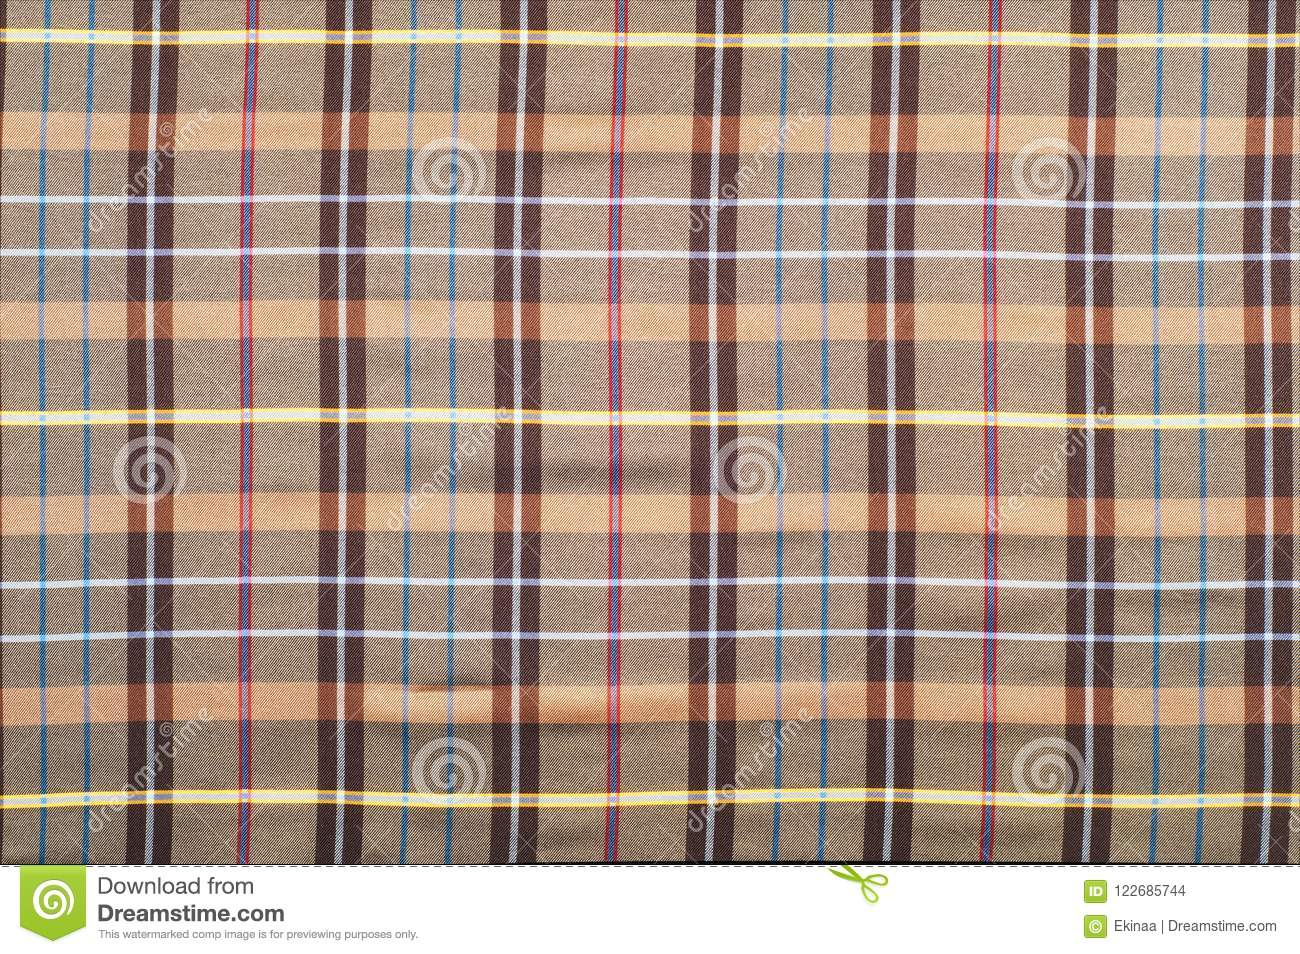 fabric coloring in the box tartan cloth plaid fabric background plaid fabric ideal for a christmas or scottish themed background